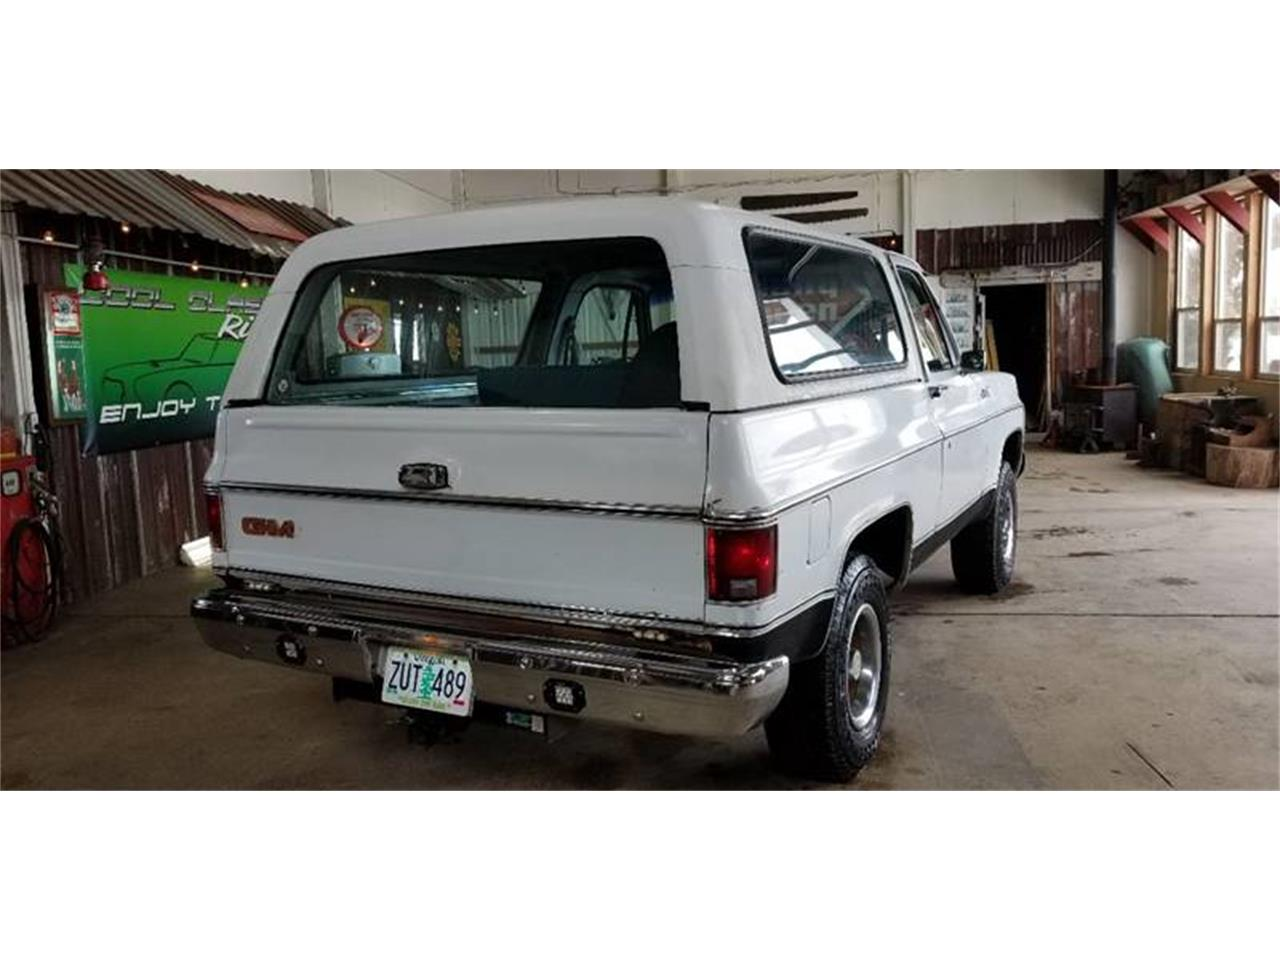 Large Picture of 1979 GMC Jimmy located in Oregon - $12,500.00 Offered by Cool Classic Rides LLC - QTVF